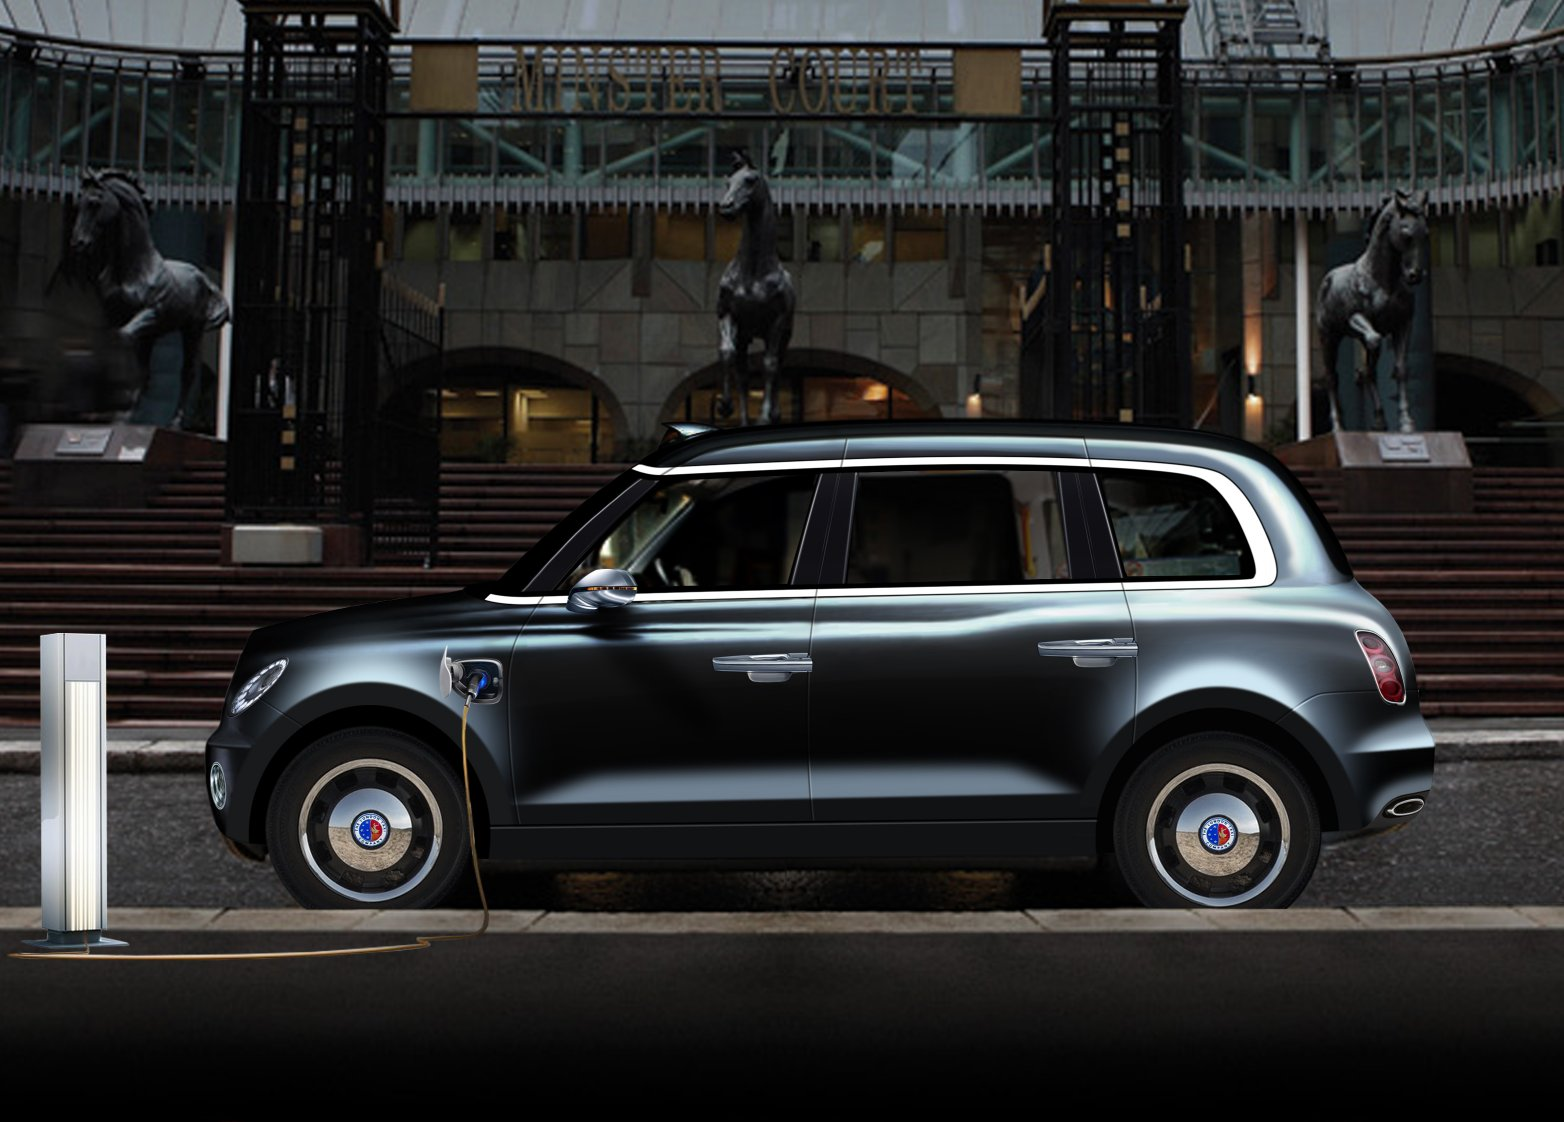 THE FUTURE ZERO-EMISSIONS LONDON TAXI